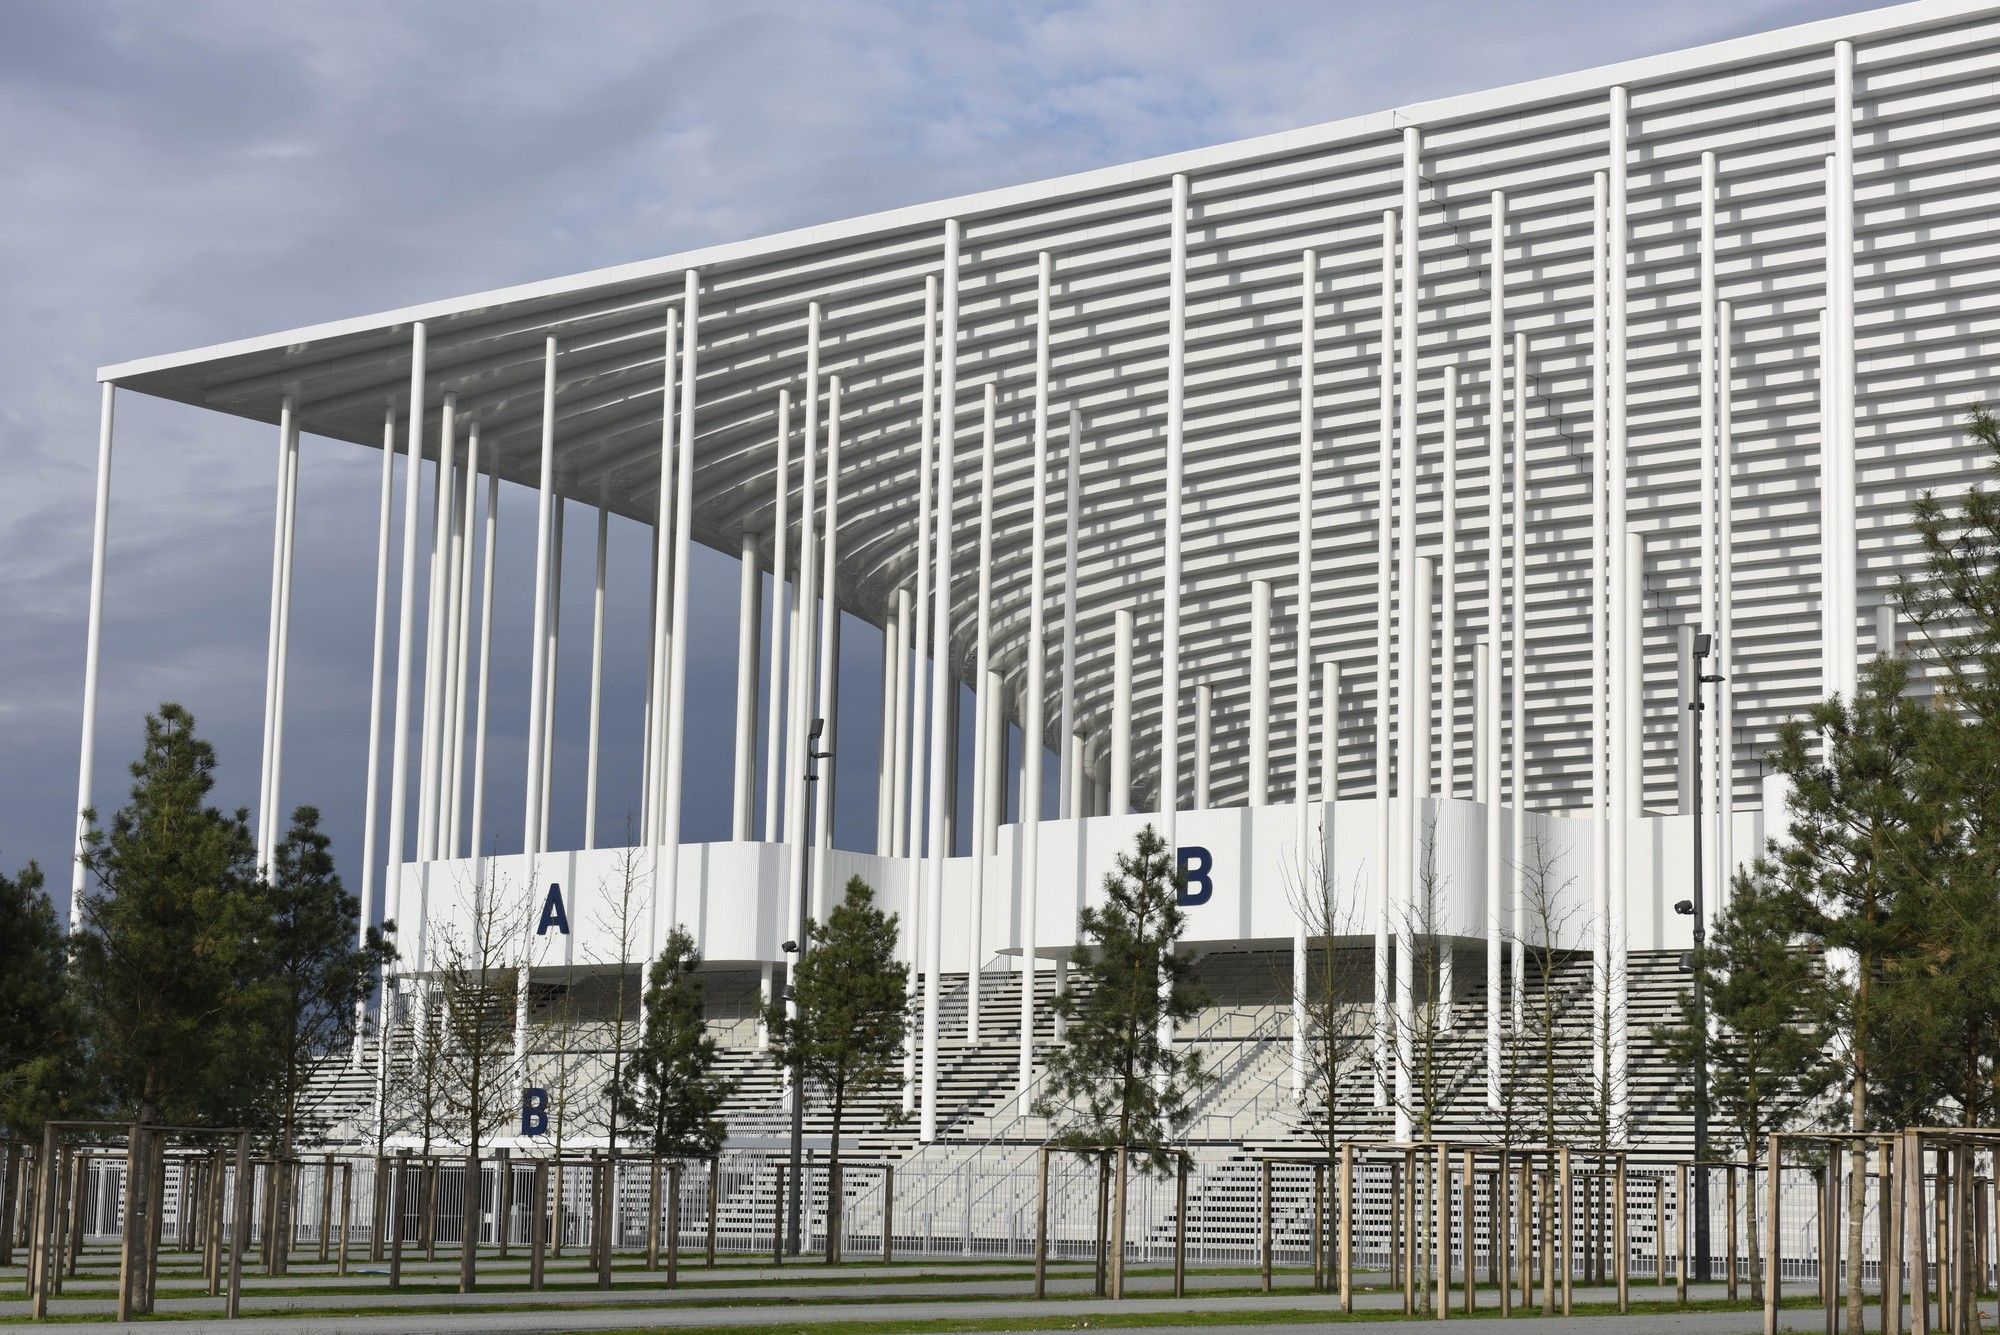 The New Bordeaux Stadium Herzog De Meuron Arch2o Com